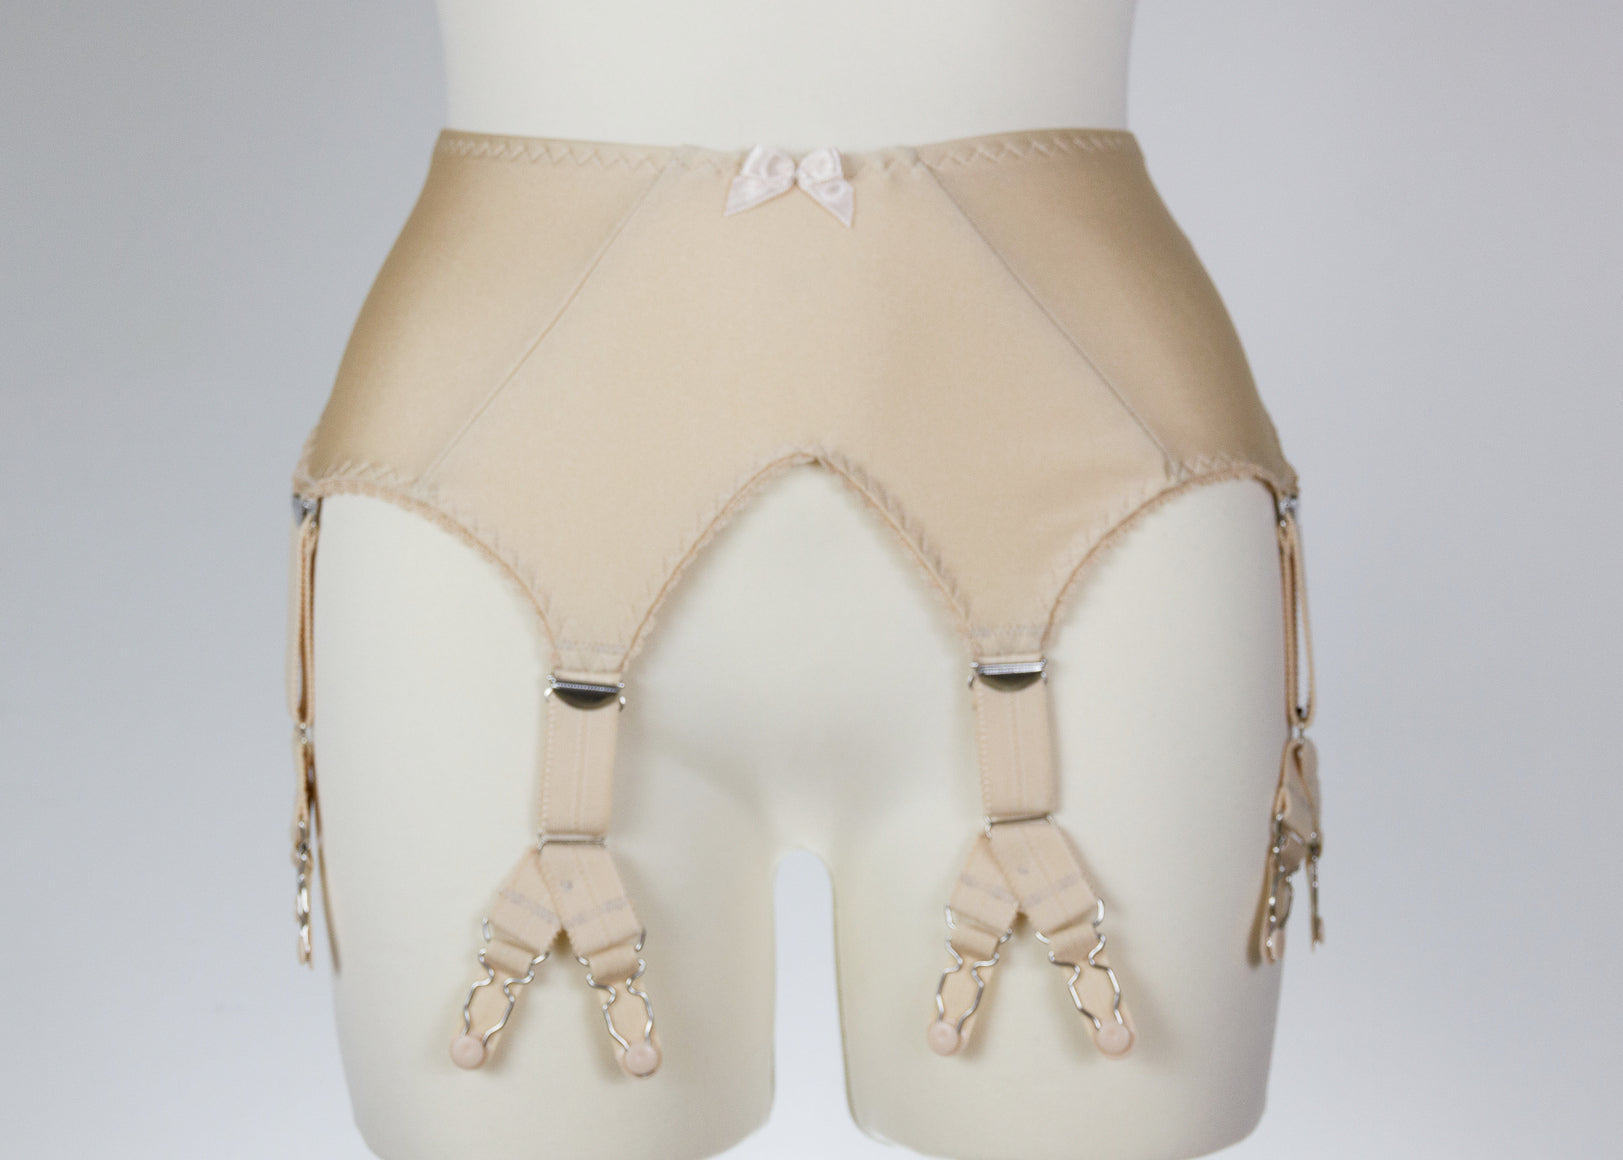 Y- Straps  V clips Add Y-straps to any garter belt from Cocos'RetroCloset shop